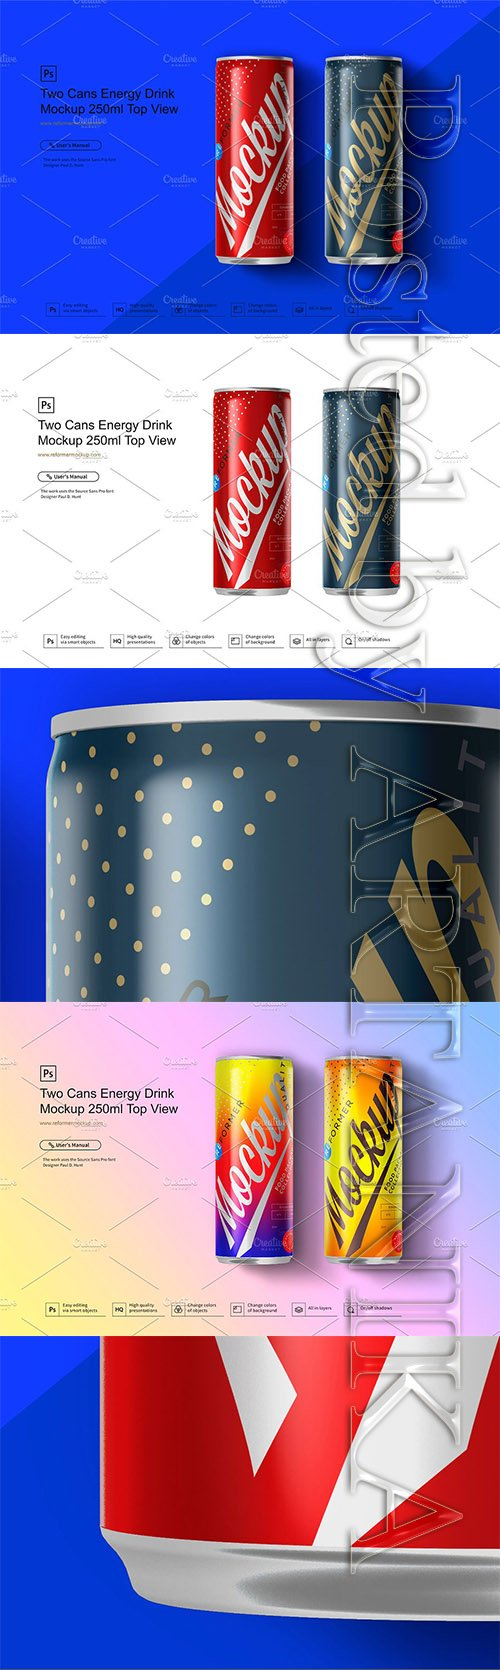 Two Cans Energy Drink Mockup 250ml 3580775